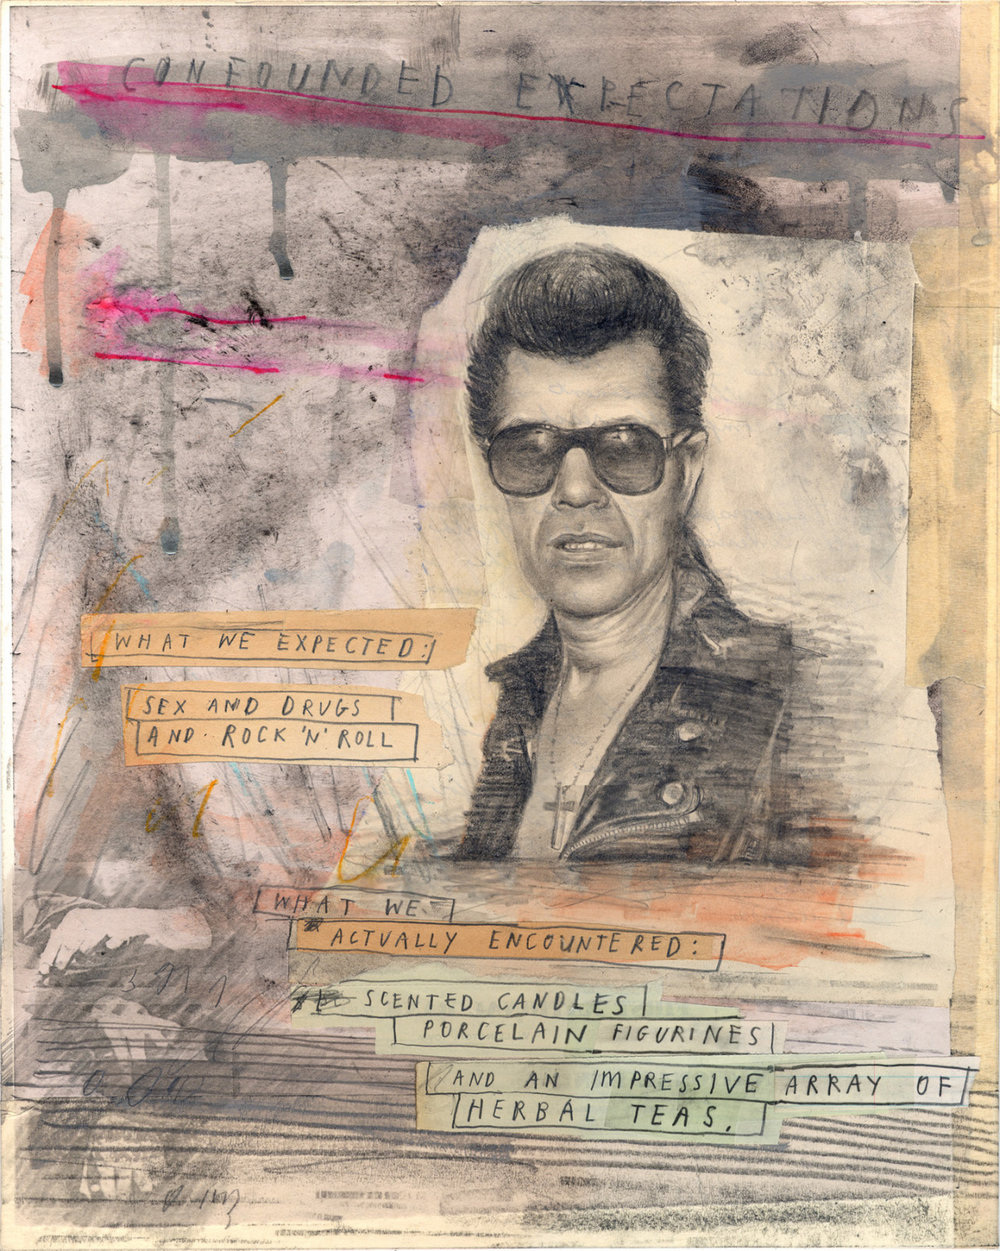 'The Shadow Knows' 15 x 12 inches, mixed media on card, mounted on wood. 2016. (and if anyone's interested, that's rockabilly guitar legend Link Wray.)